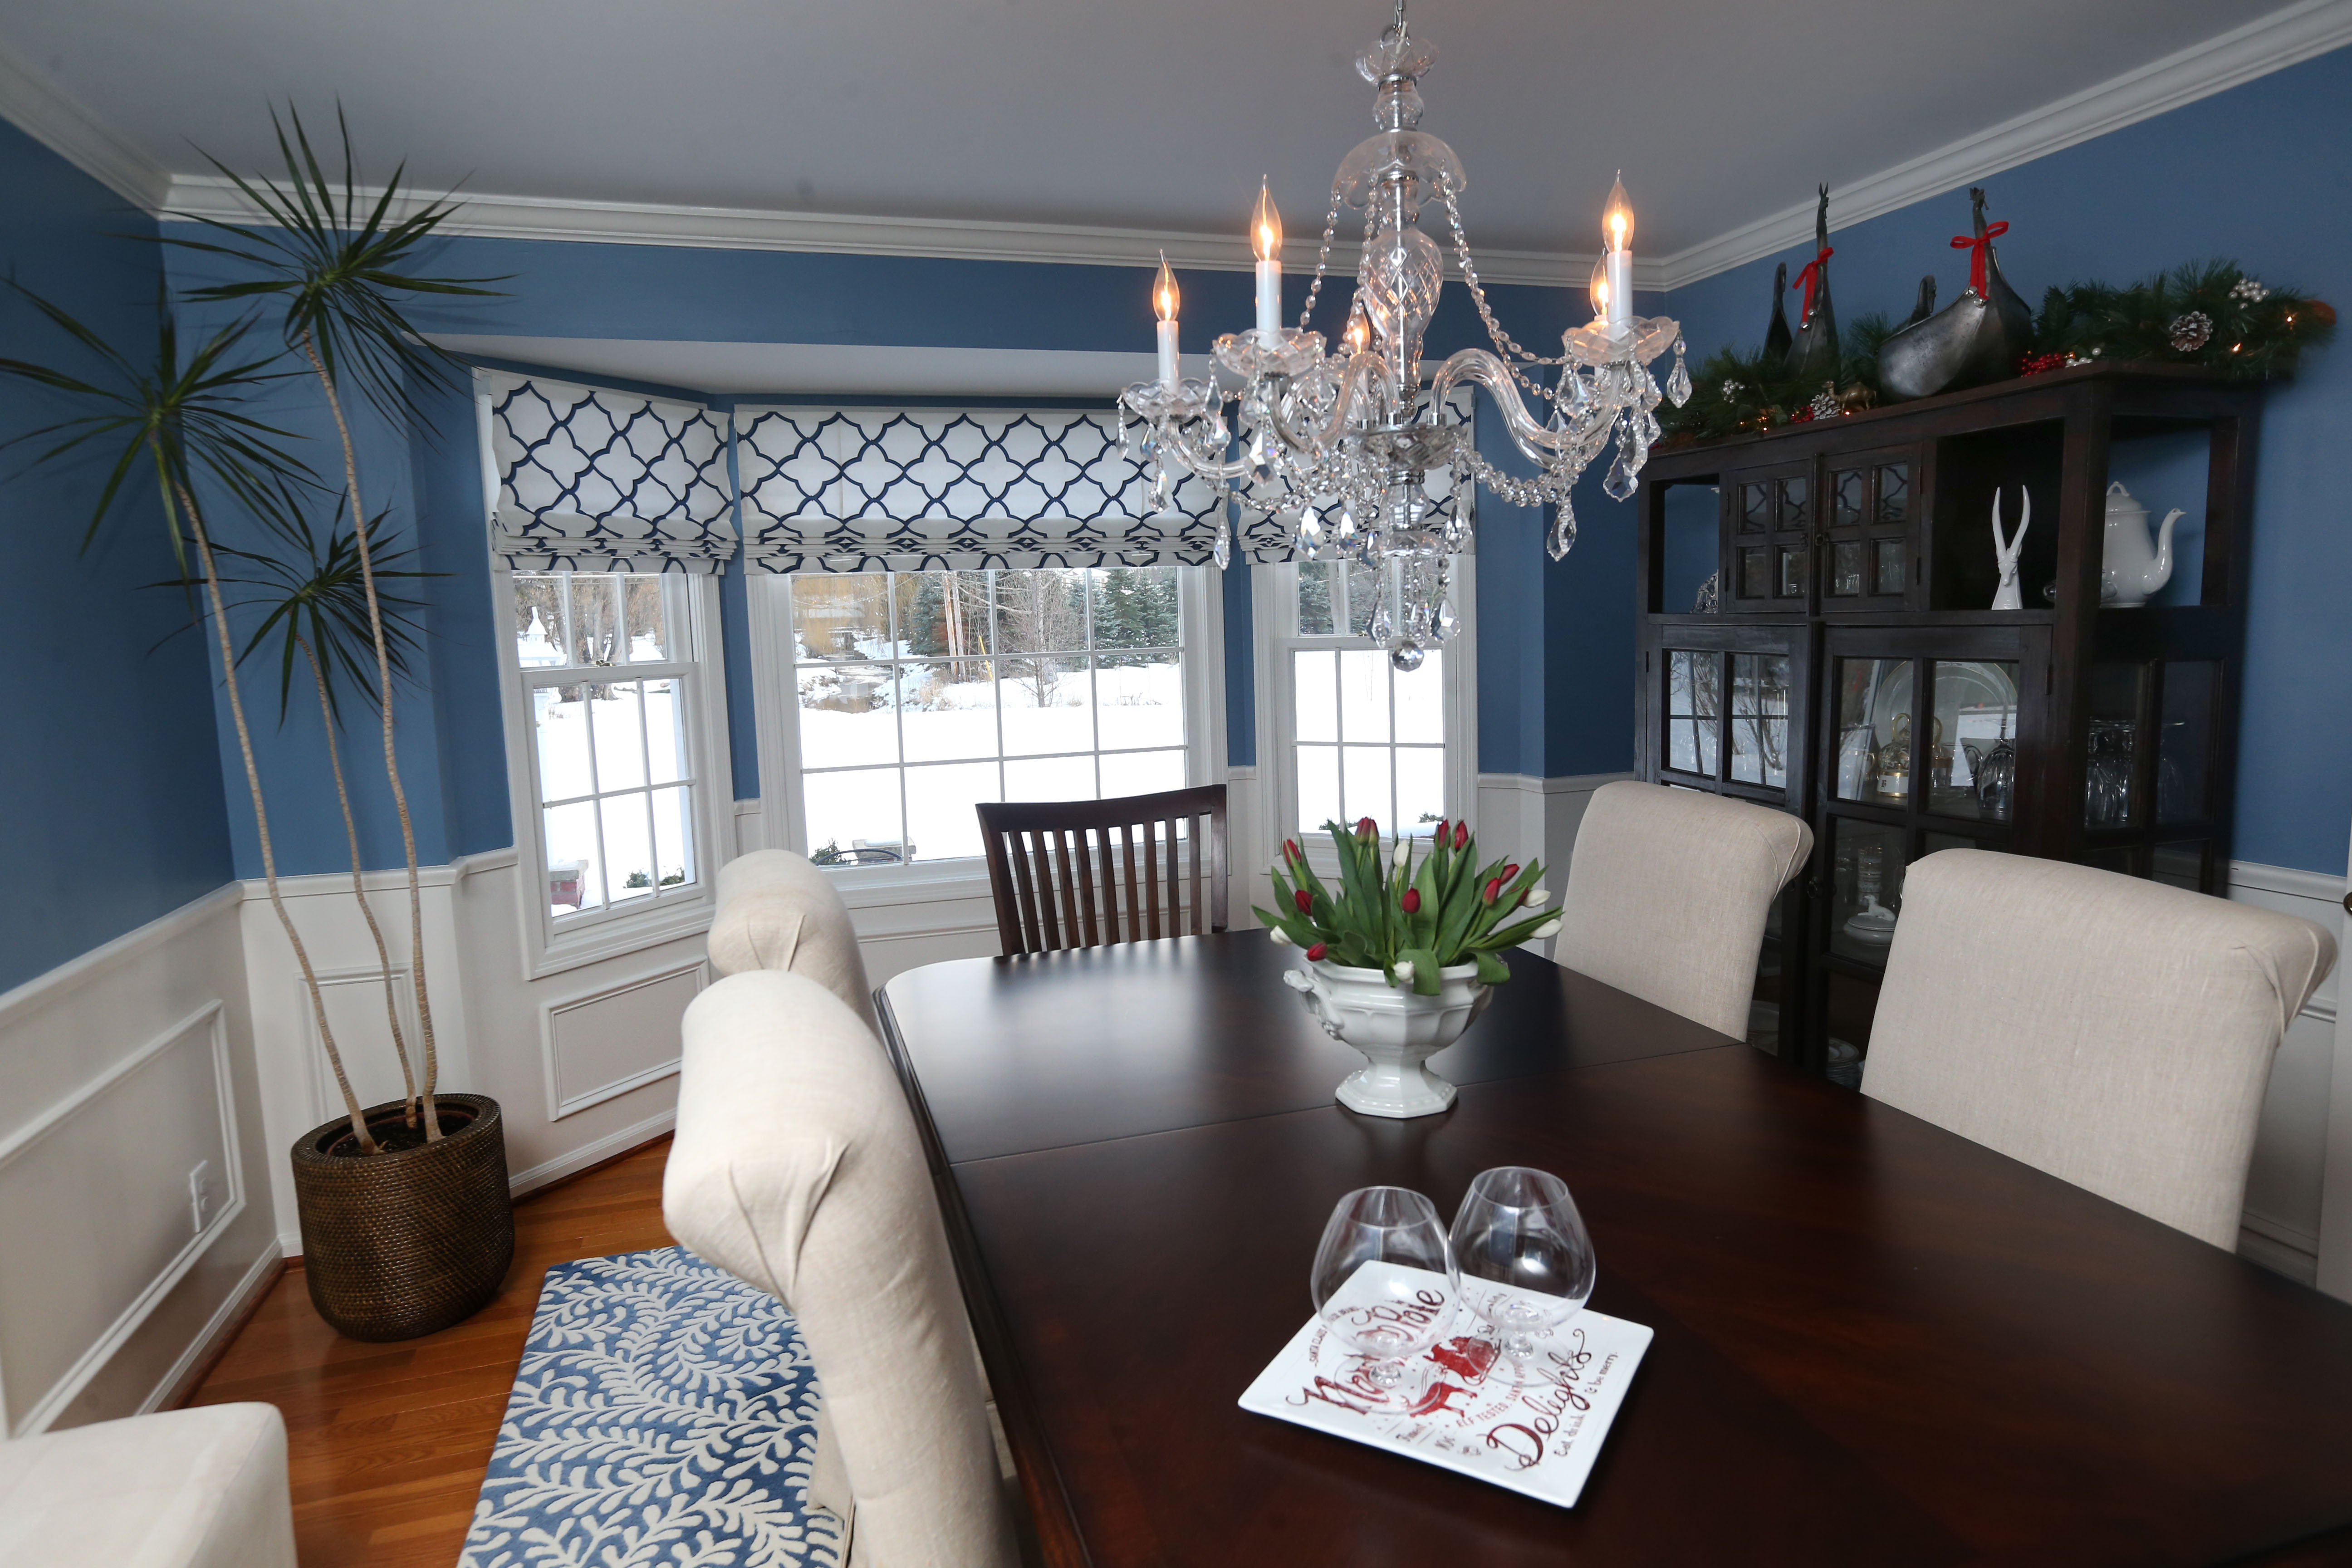 The dining room walls above the wainscoting are painted Benjamin Moore New York State of Mind. Photo by Sharon Cantillon/Buffalo News.